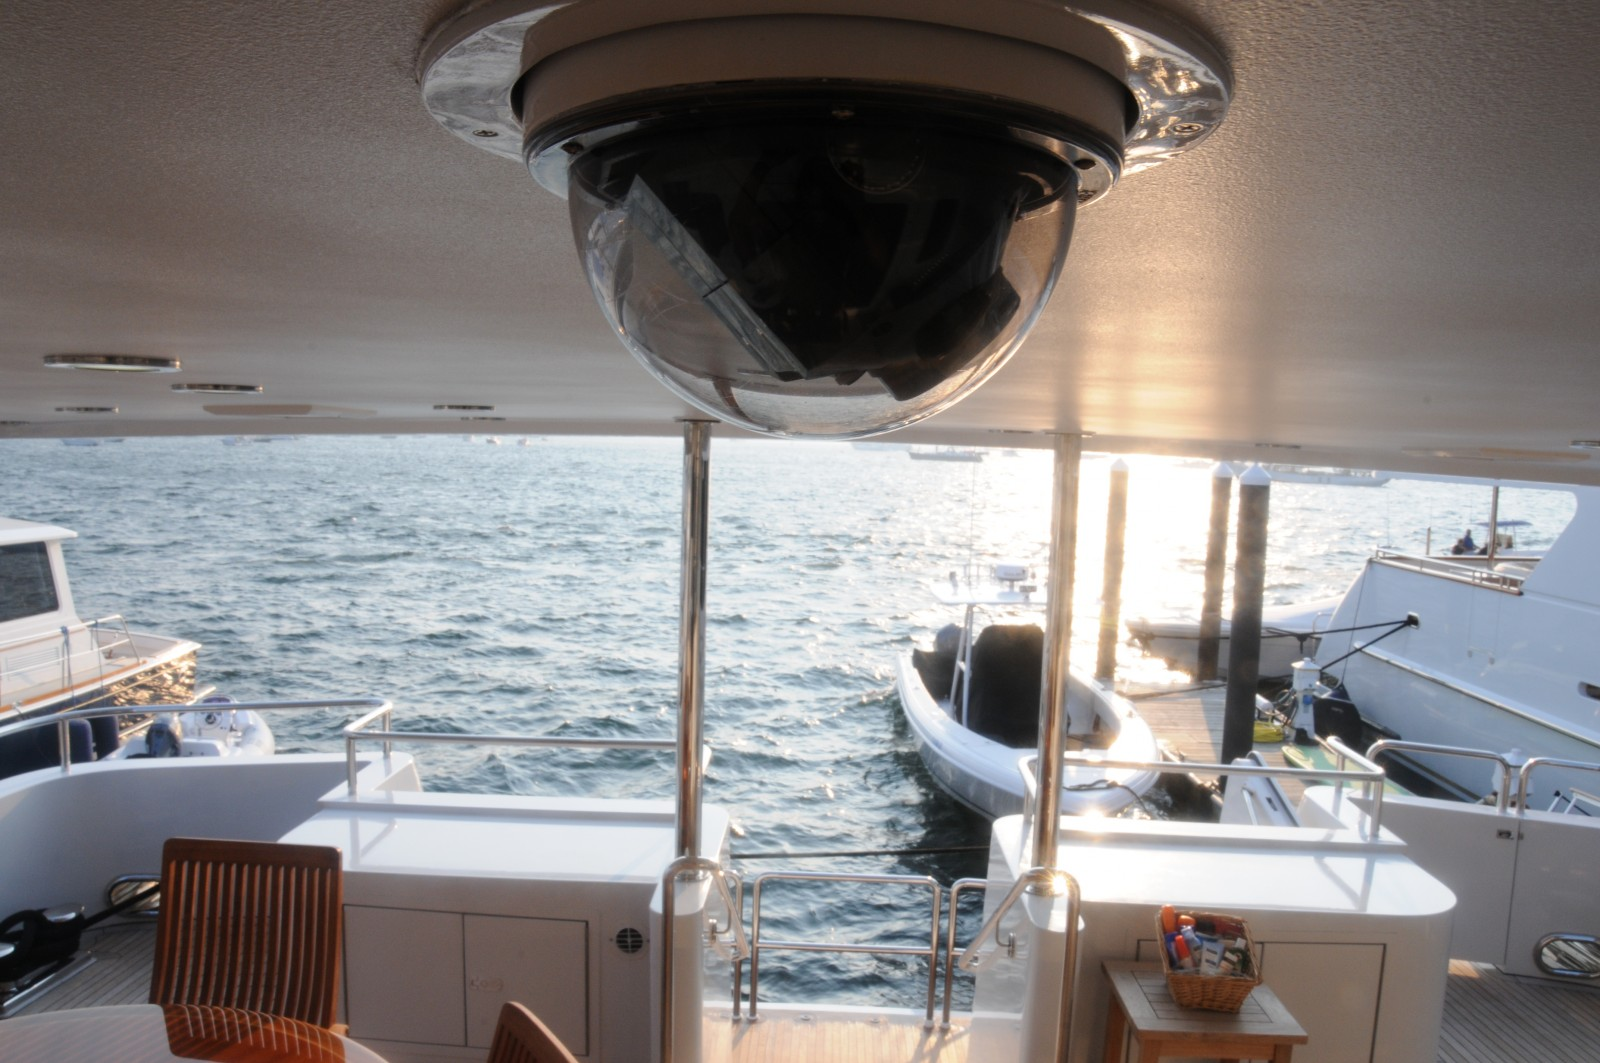 Secure at Sea: Yachts tempt thieves, especially in South